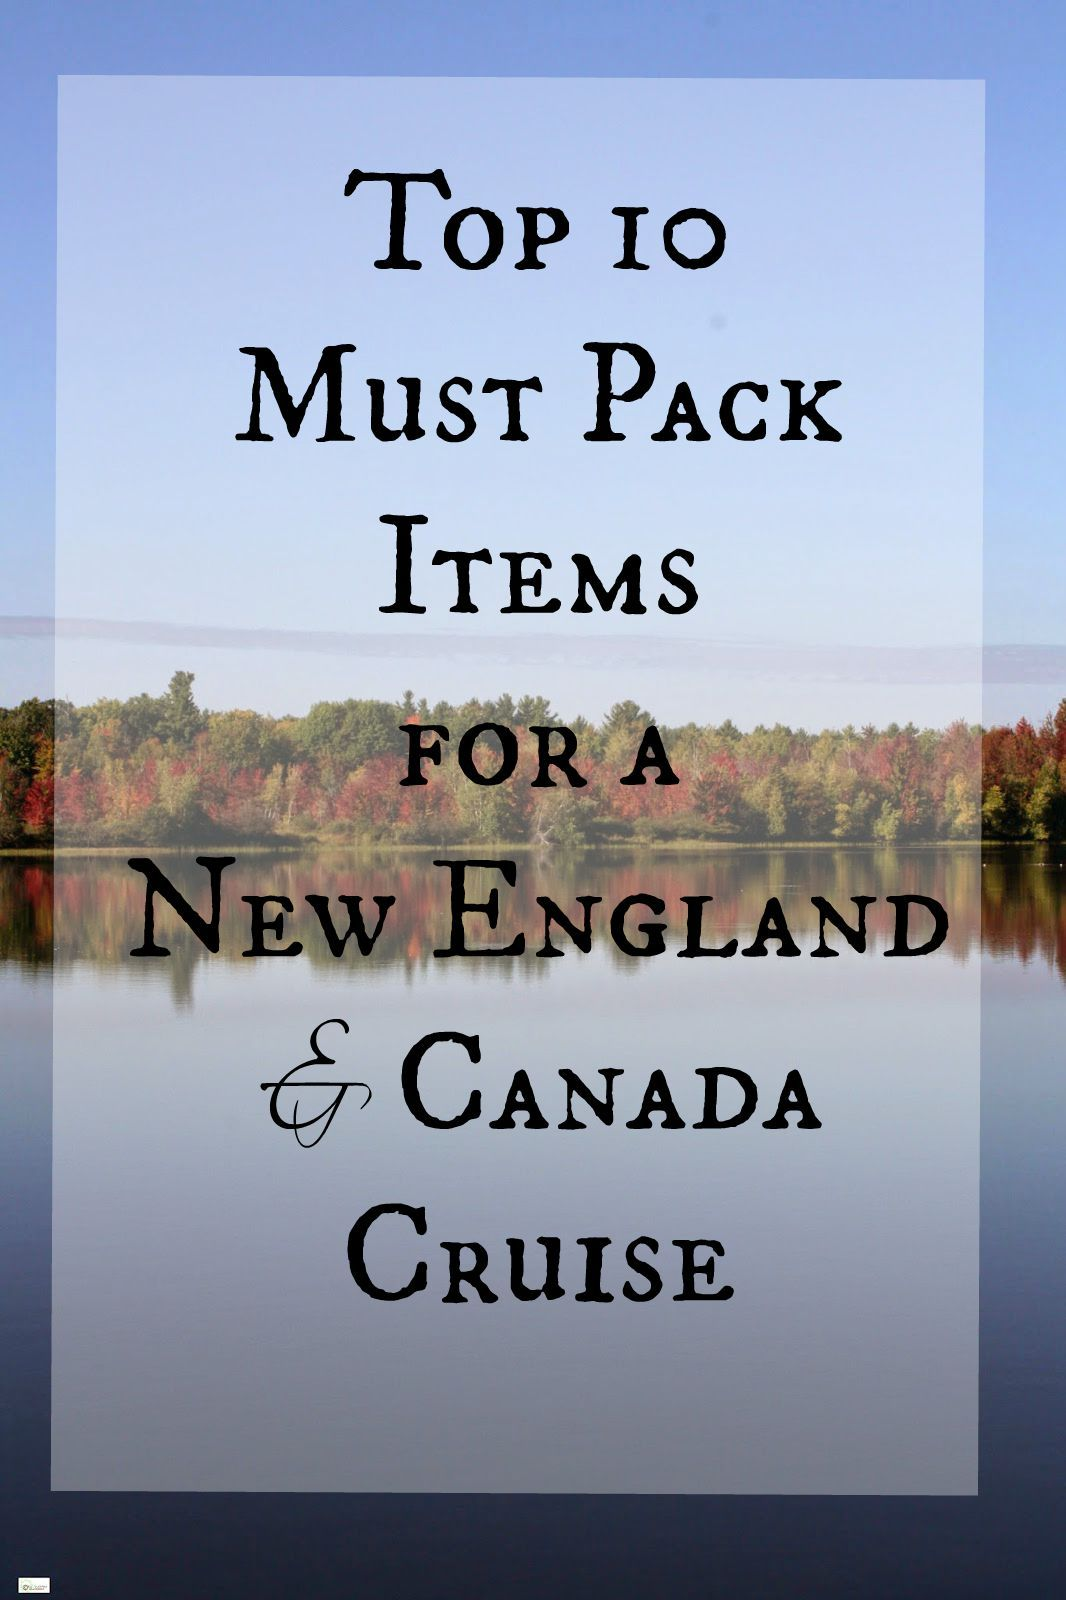 Top 10 Must Pack Items For A New England And Canada Cruise